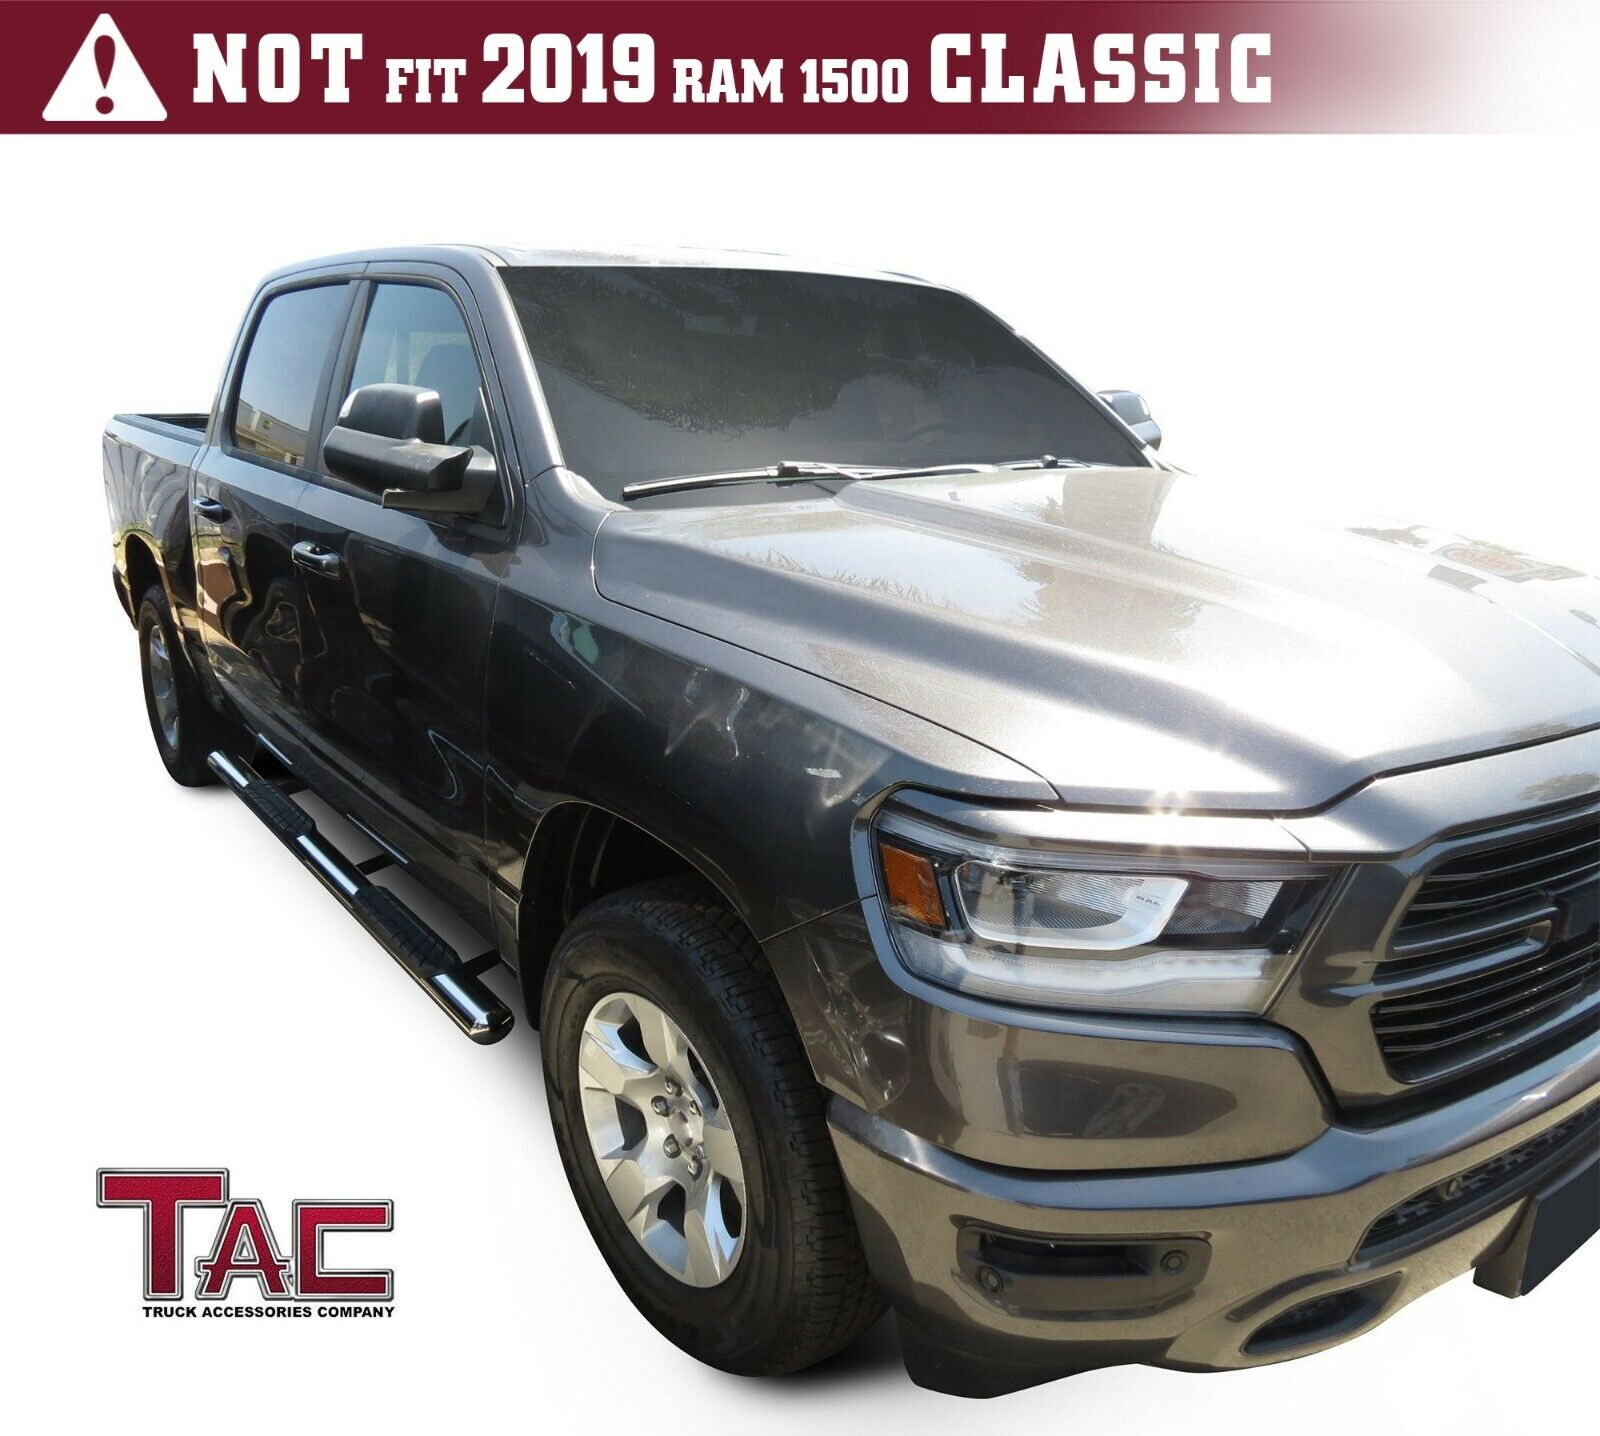 Excl. 2019 Ram 1500 Classic Truck Pickup 3 Texture Black Side Bars Nerf Bars TAC Side Steps Running Boards Fit 2019-2020 Dodge Ram 1500 Crew Cab